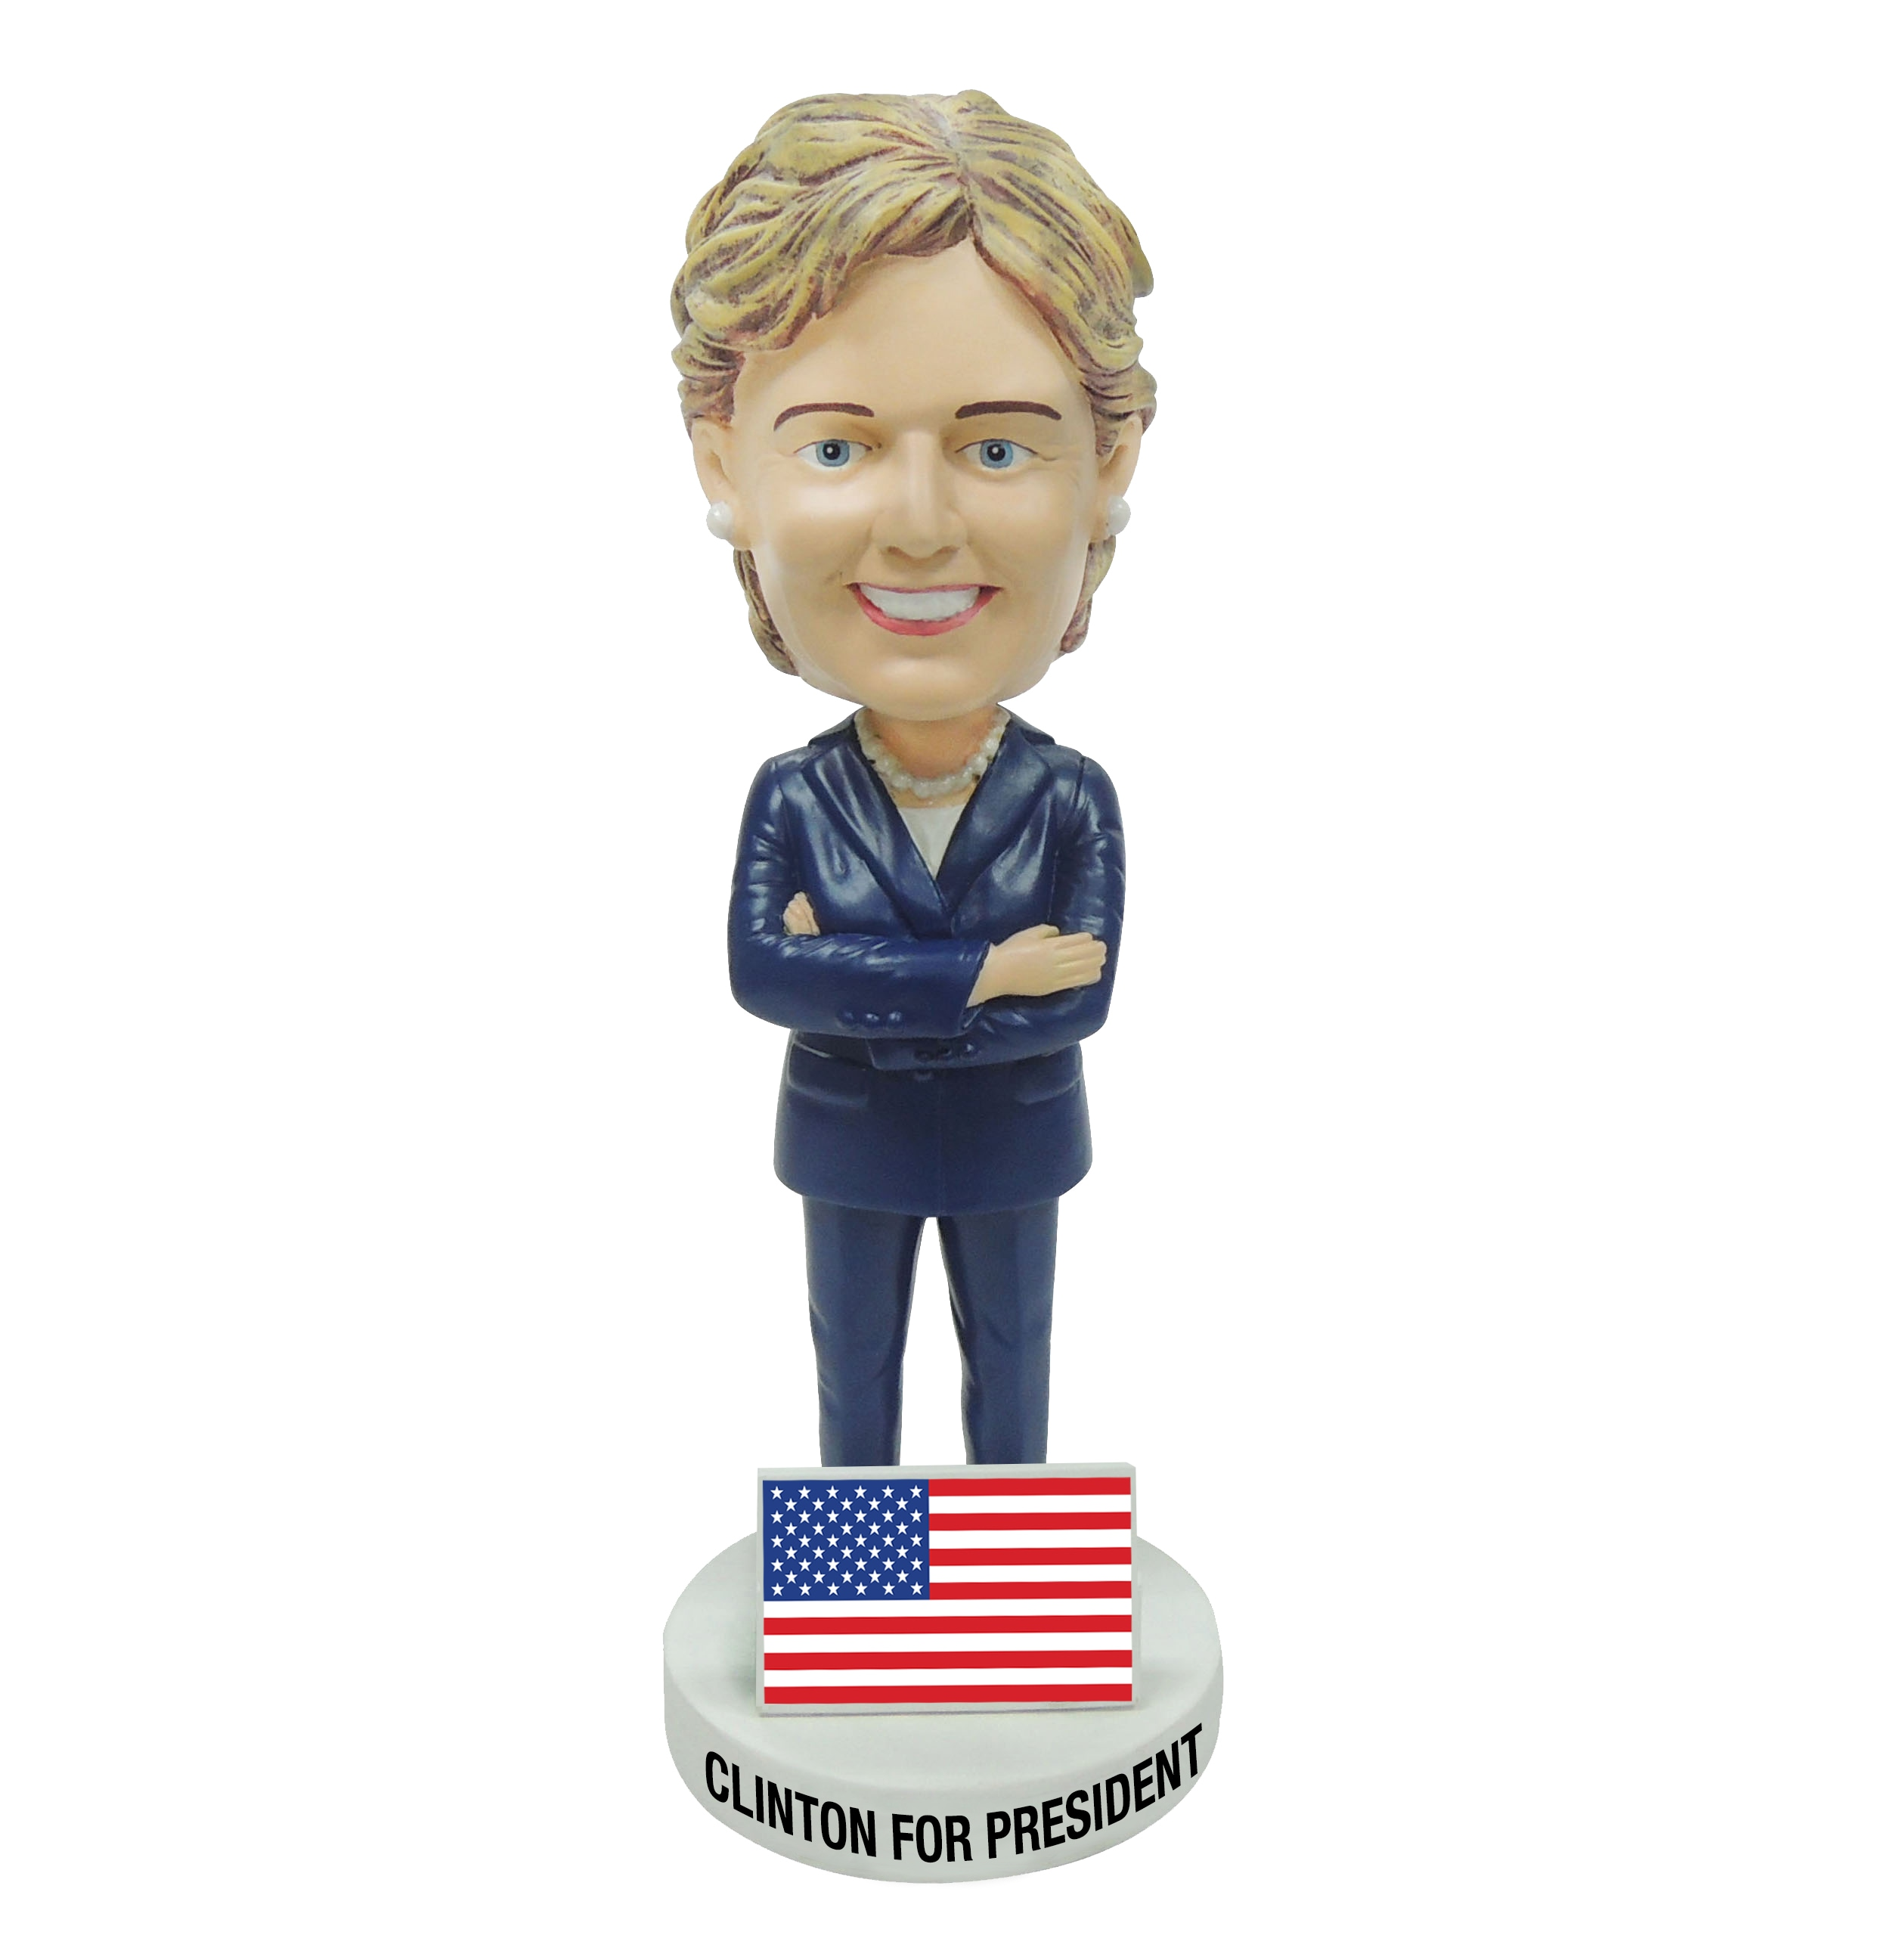 Hillary Clinton For President Bobblehead